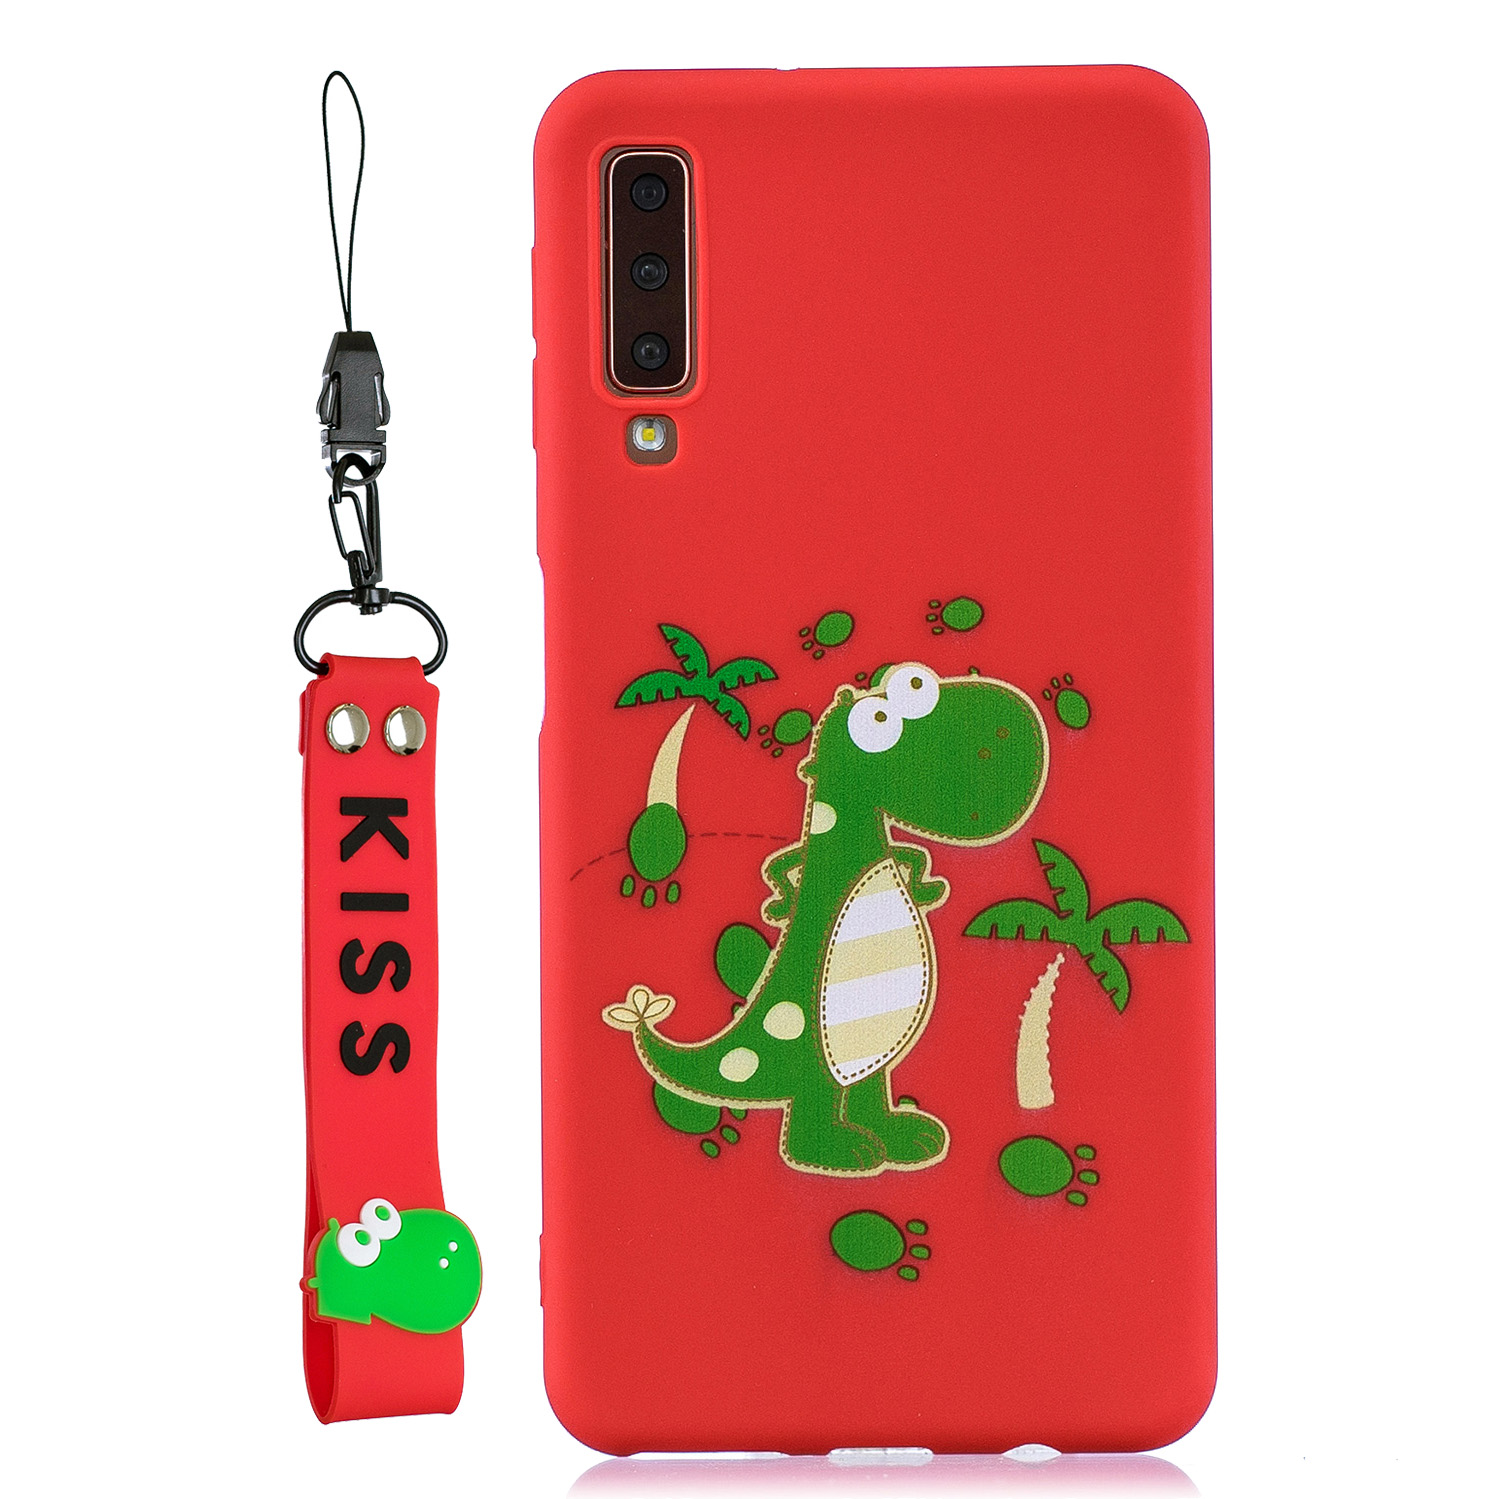 For Samsung A7 2018 Cartoon Lovely Coloured Painted Soft TPU Back Cover Non-slip Shockproof Full Protective Case with Lanyard red